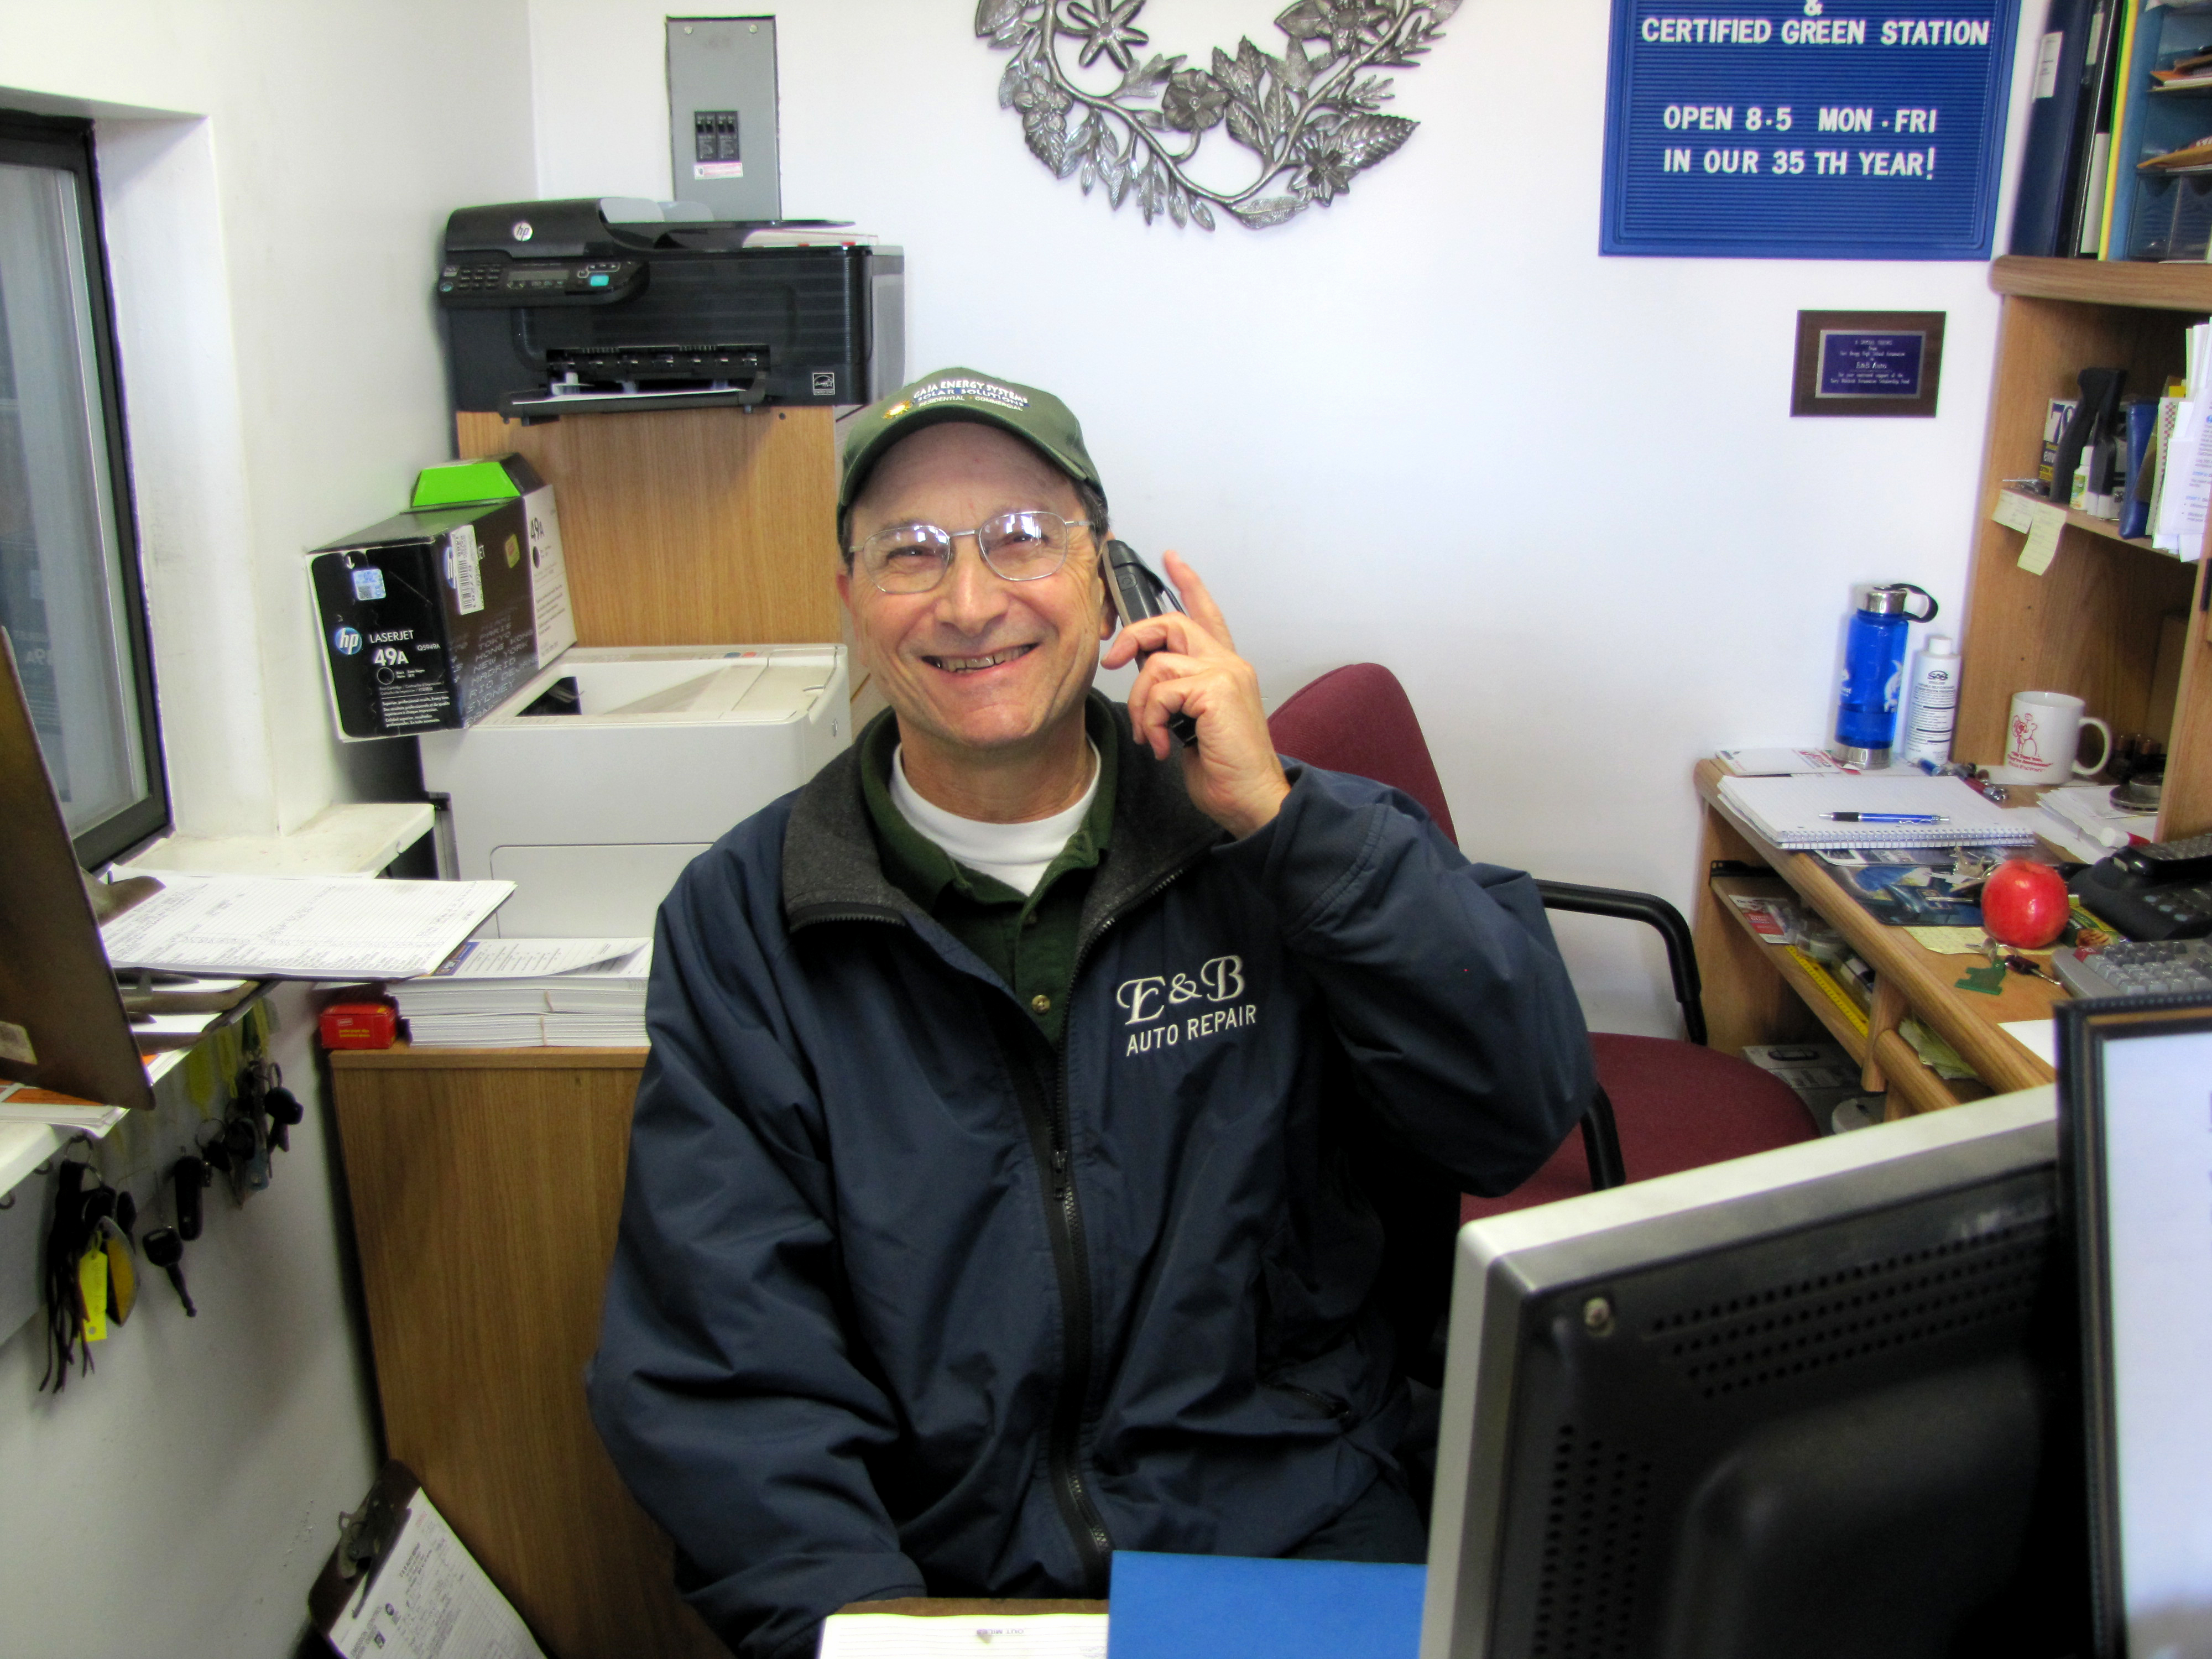 E&B Auto Repair Owner Mike Margulis in his office.